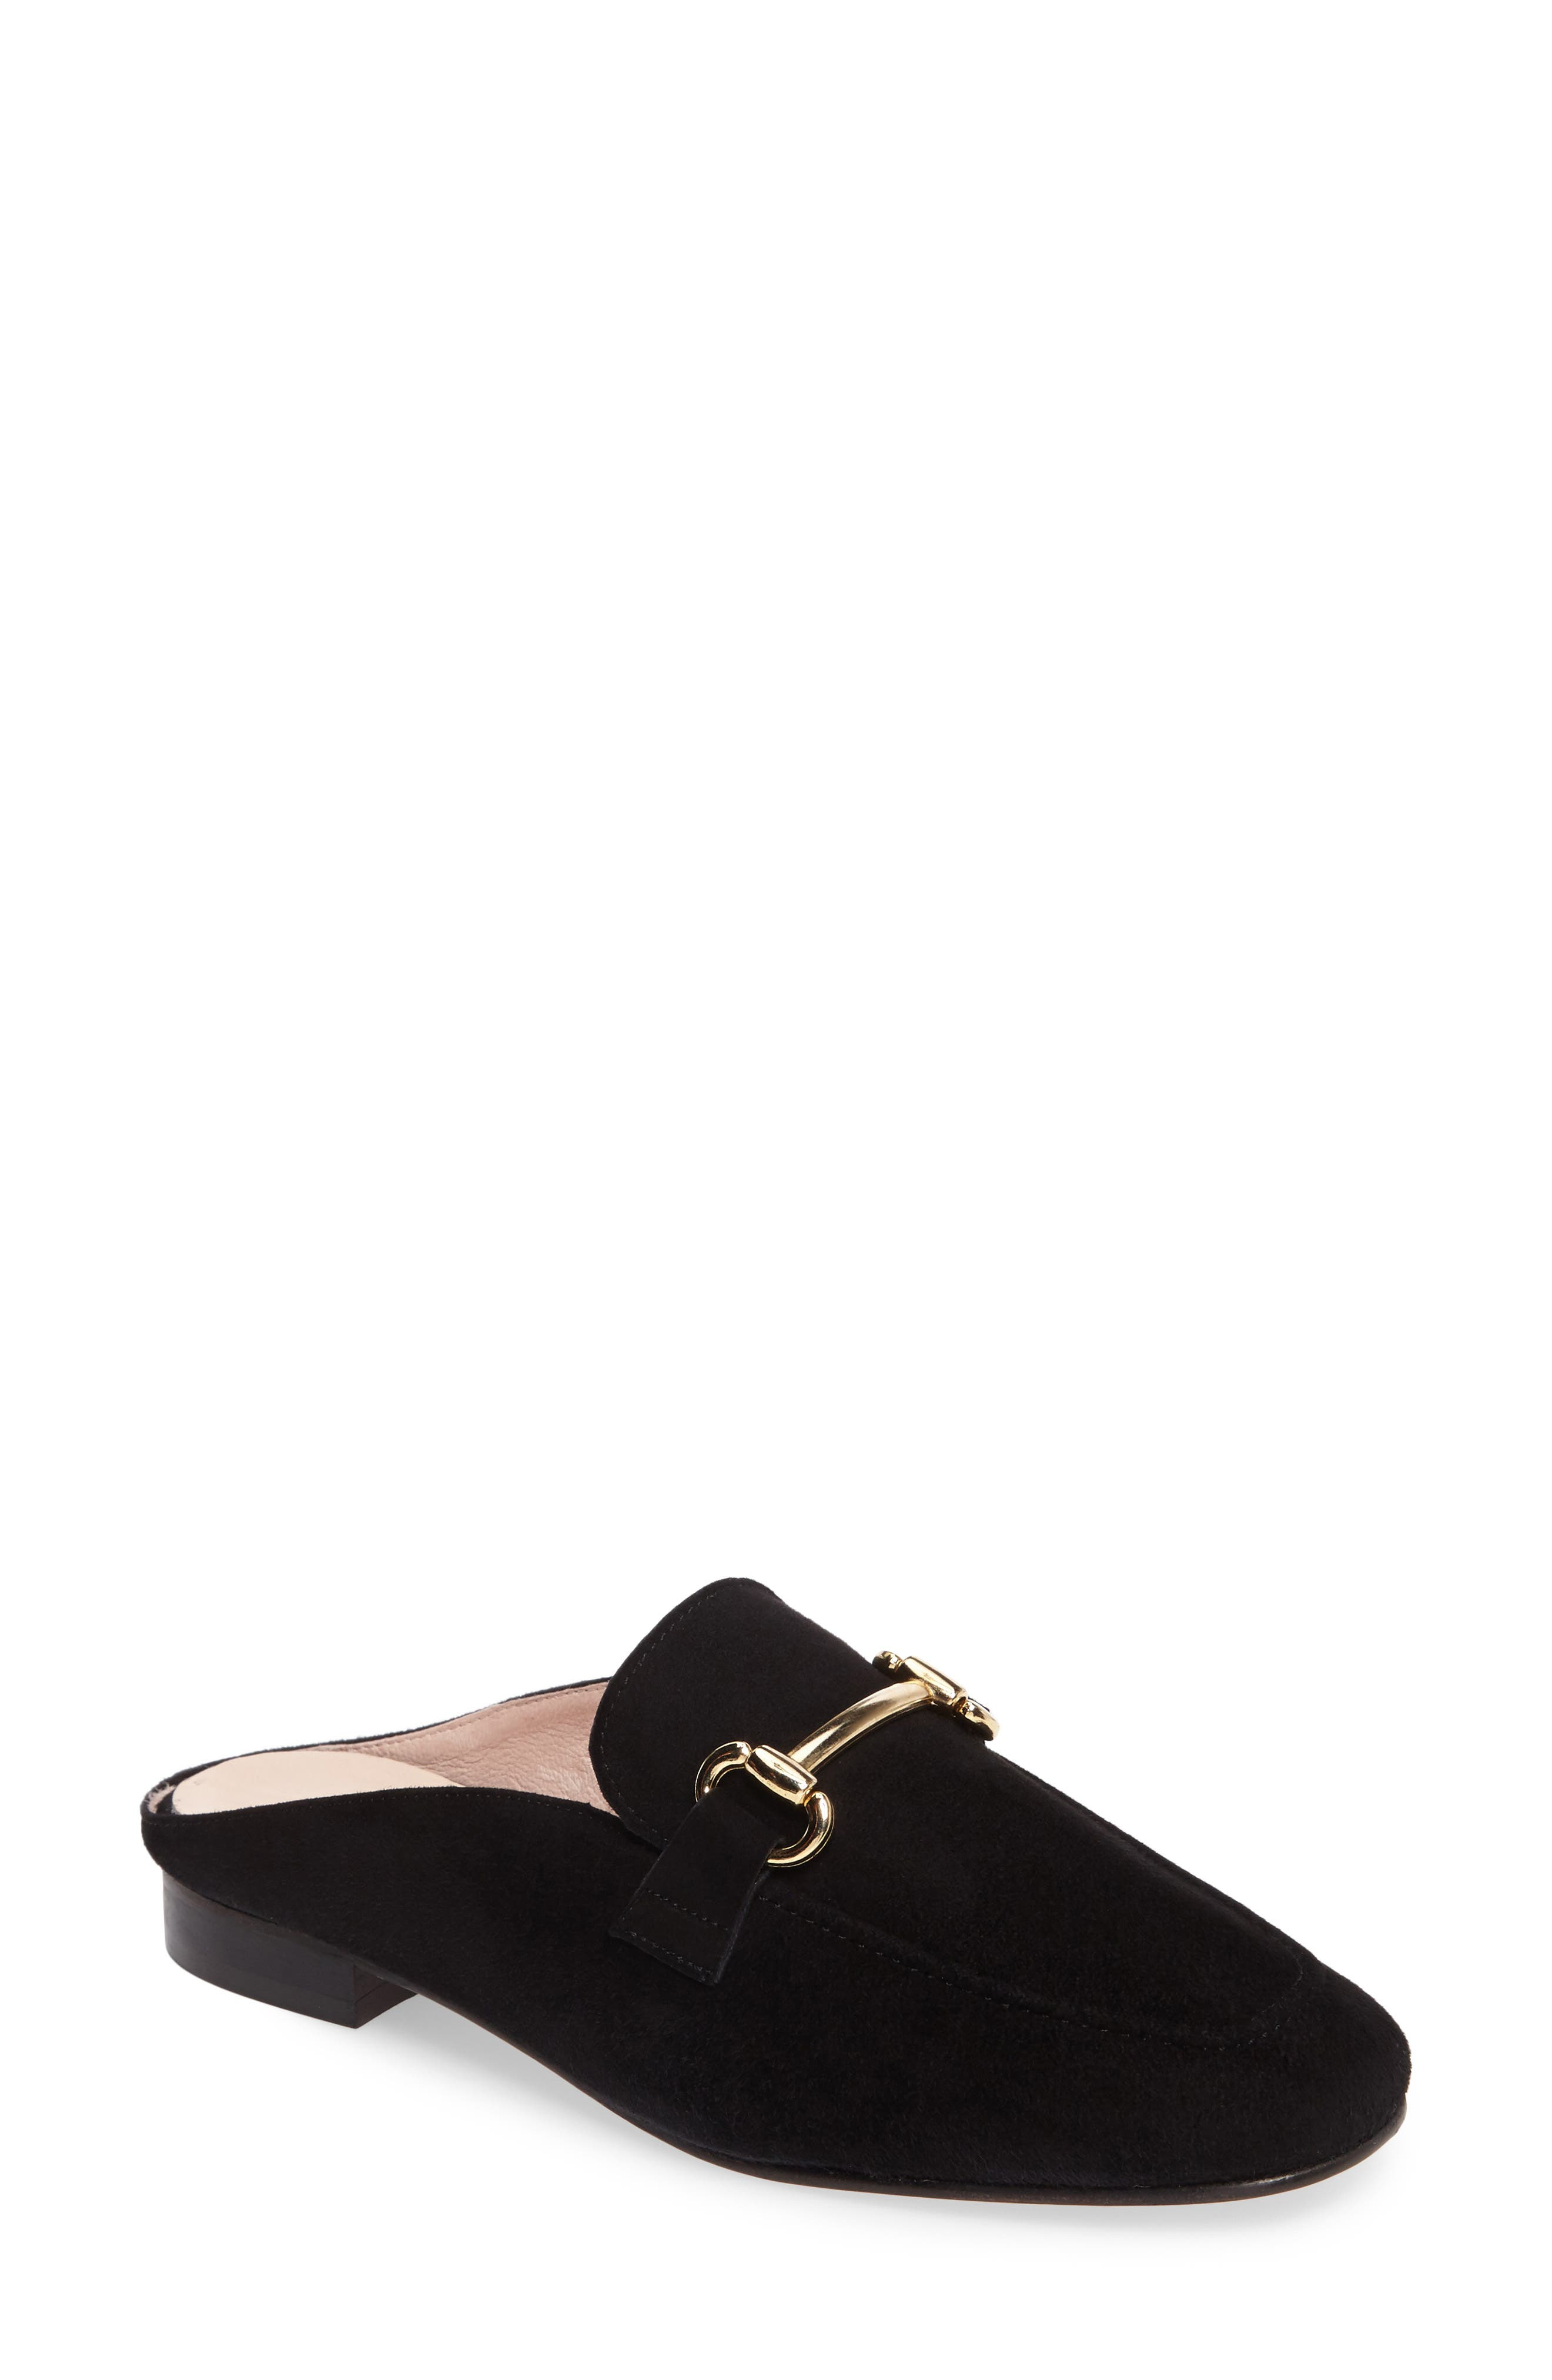 Sorrento Loafer Mule,                             Main thumbnail 1, color,                             Black Suede